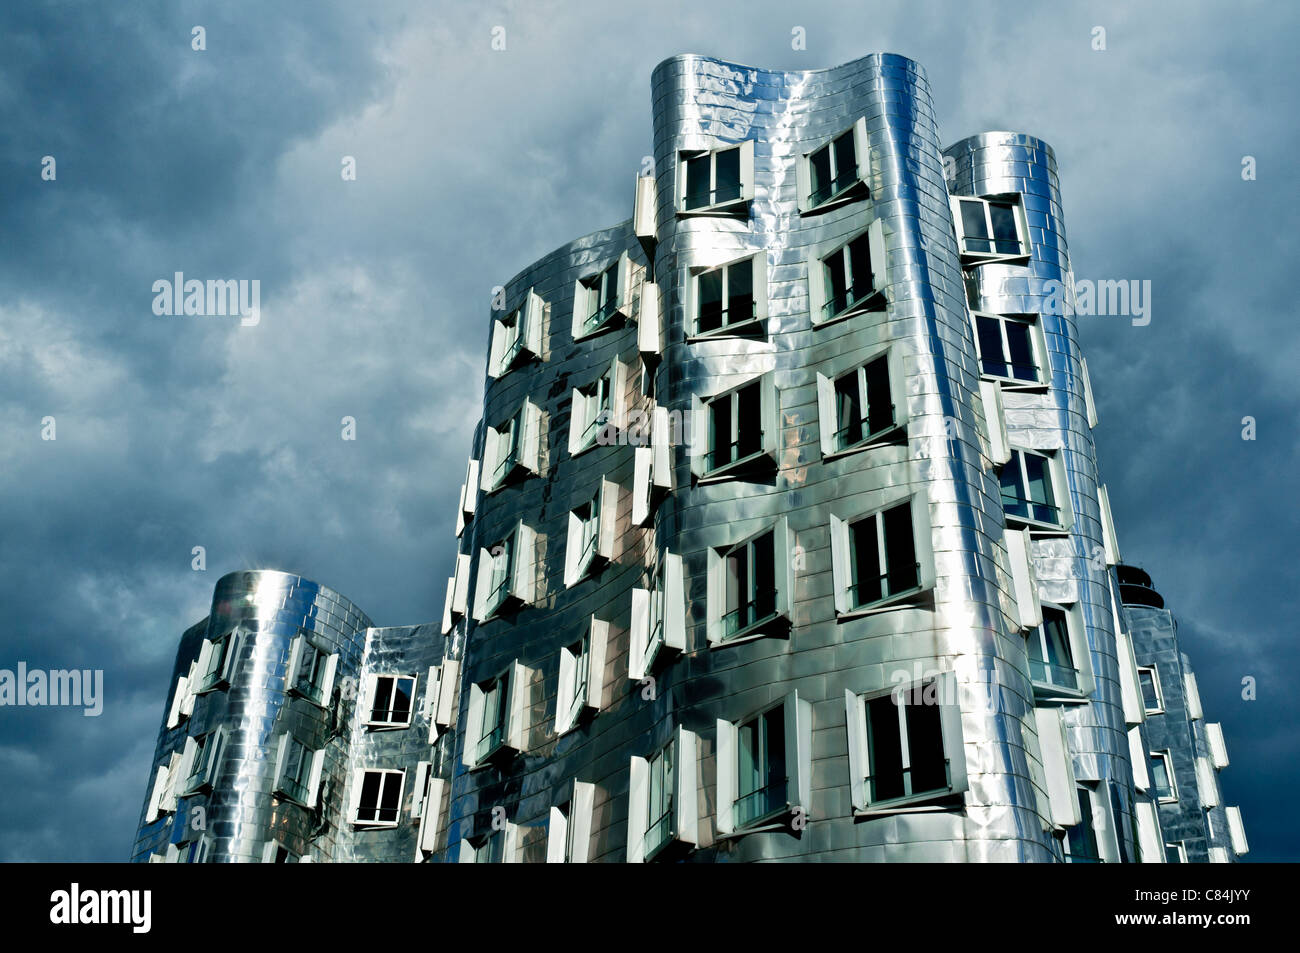 The Neuer Zollhof building at the Medienhafen, Dusseldorf, Germany Architect Frank Gehry - Stock Image